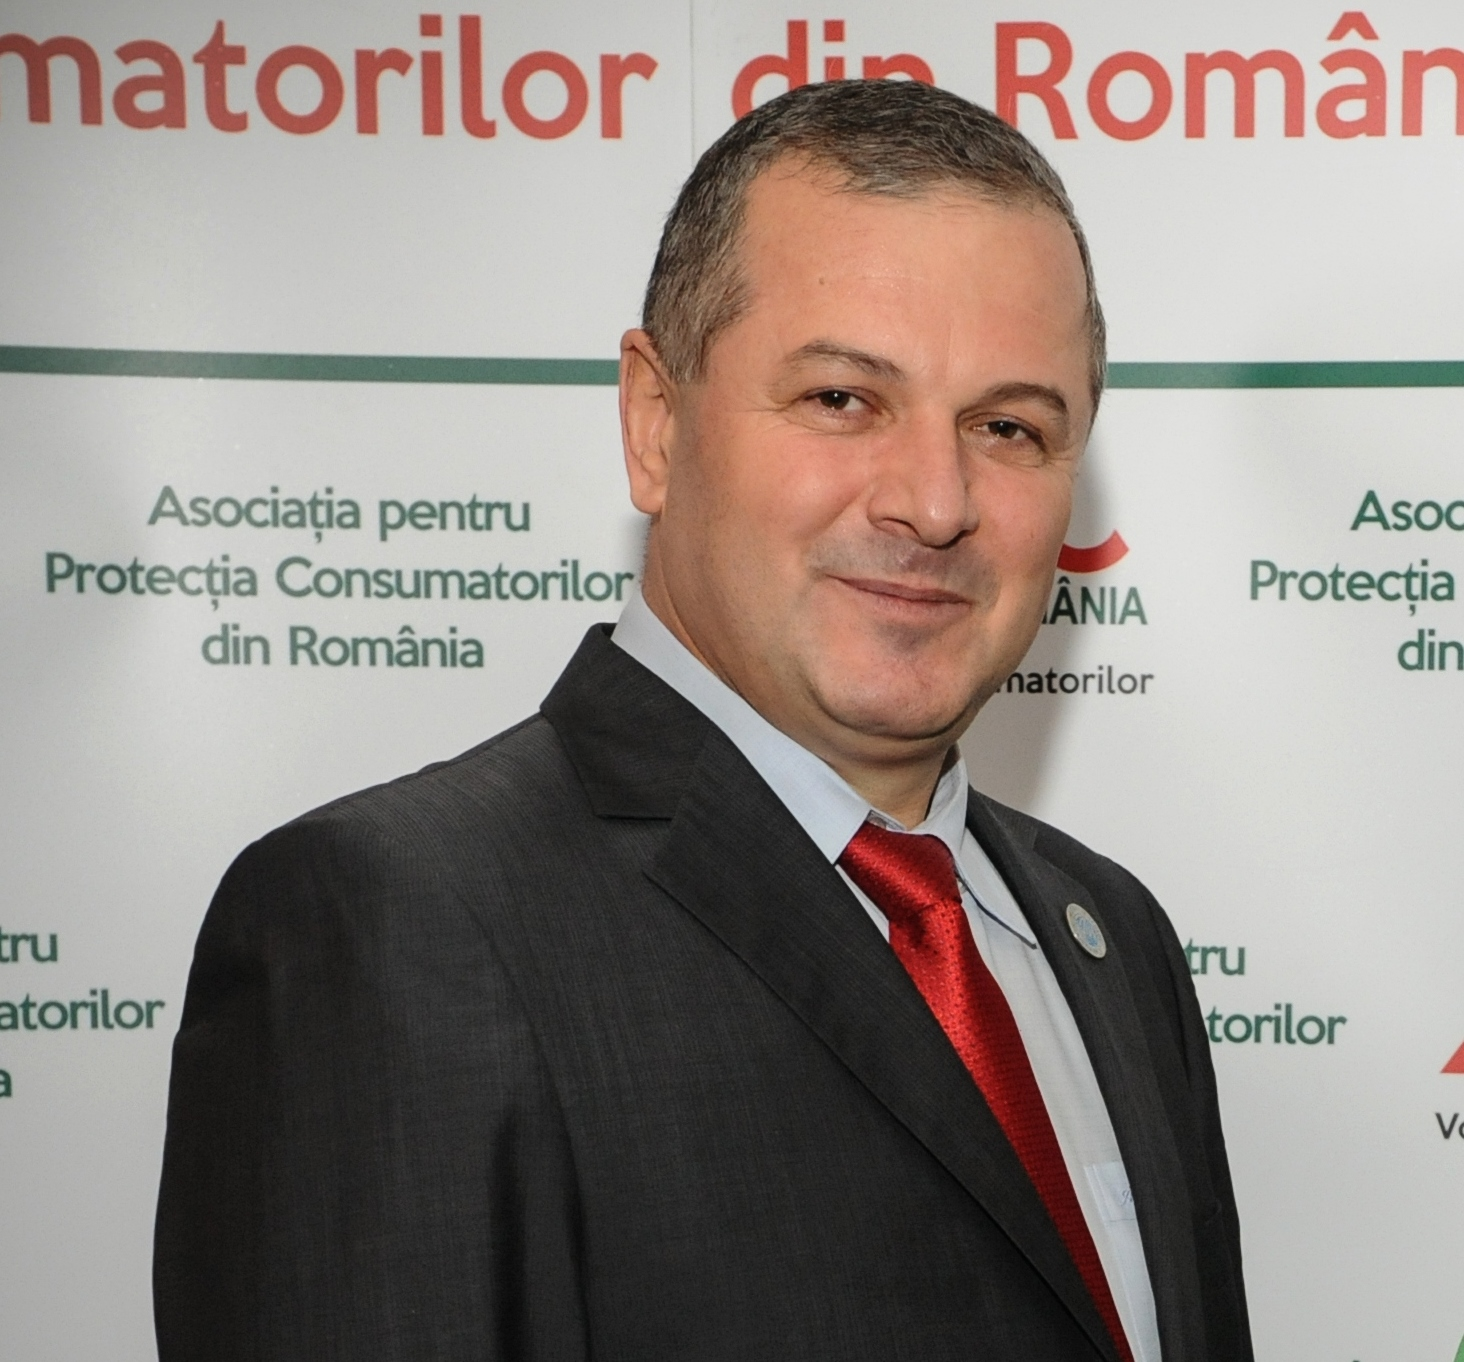 http://www.apc-romania.ro/vault/upload/galleries/PozaCostel_Stanciu_2.jpg